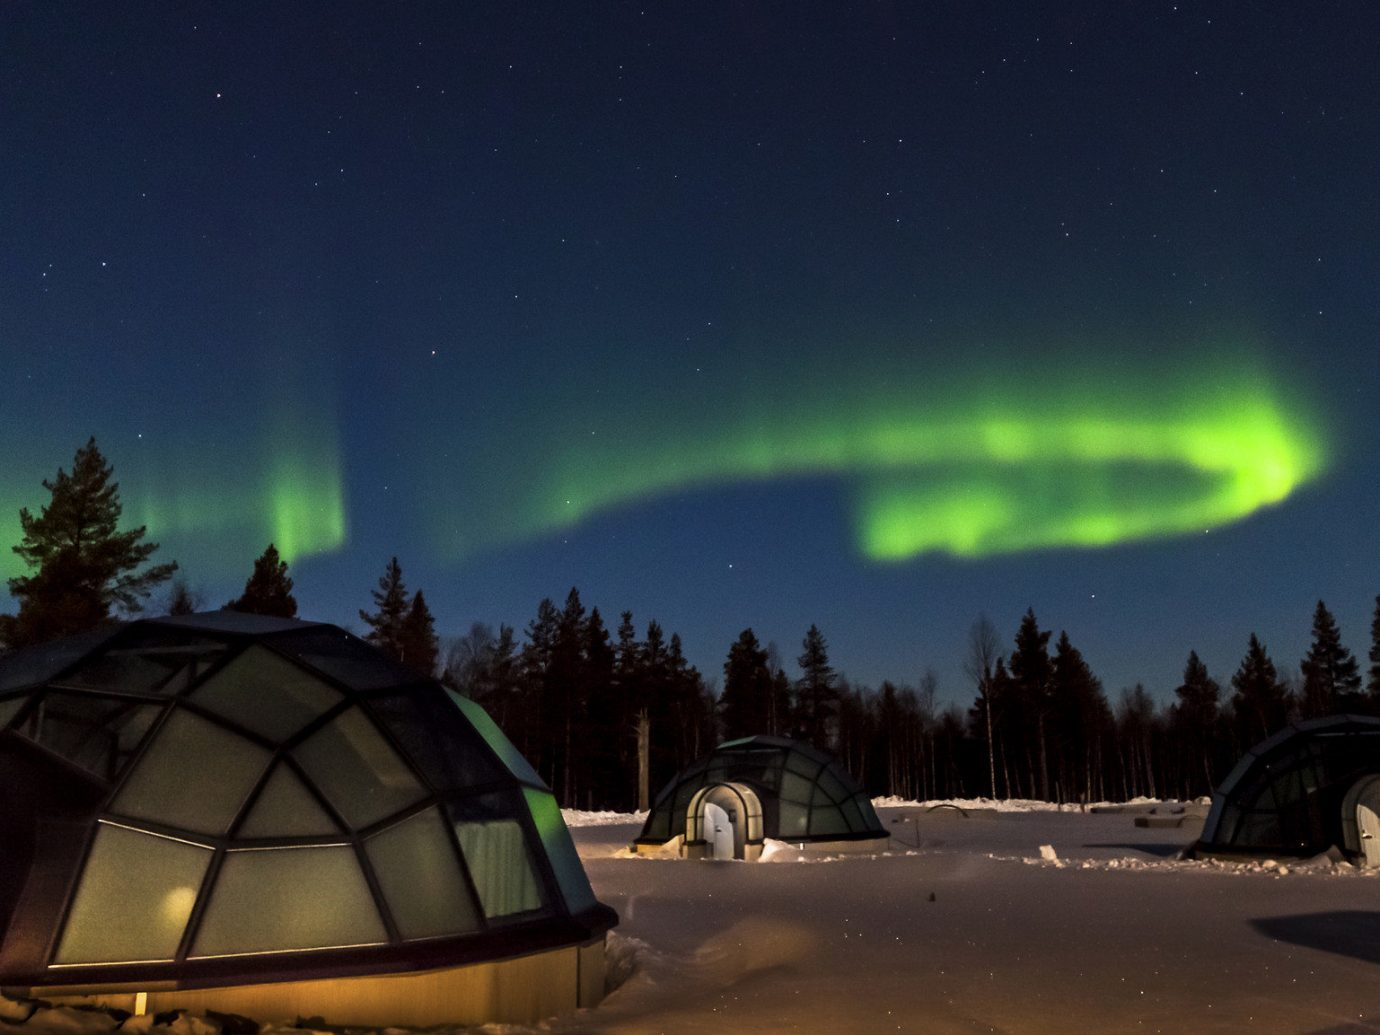 Hotels Offbeat Trip Ideas outdoor Nature sky aurora atmosphere atmosphere of earth phenomenon tree Winter landscape night computer wallpaper arctic space snow Night Sky